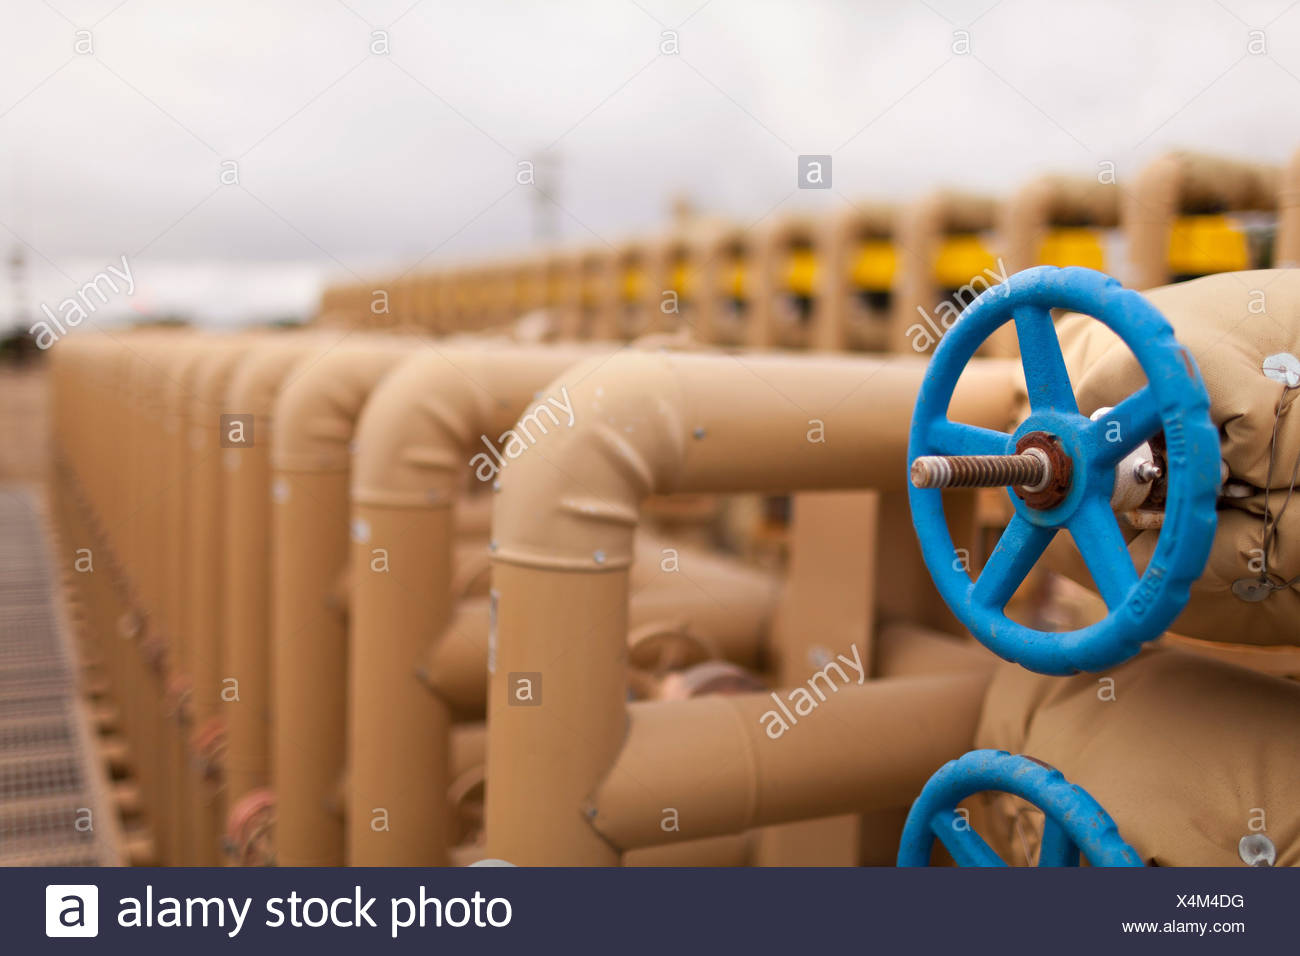 Fuel pipes in oil field, close up Stock Photo